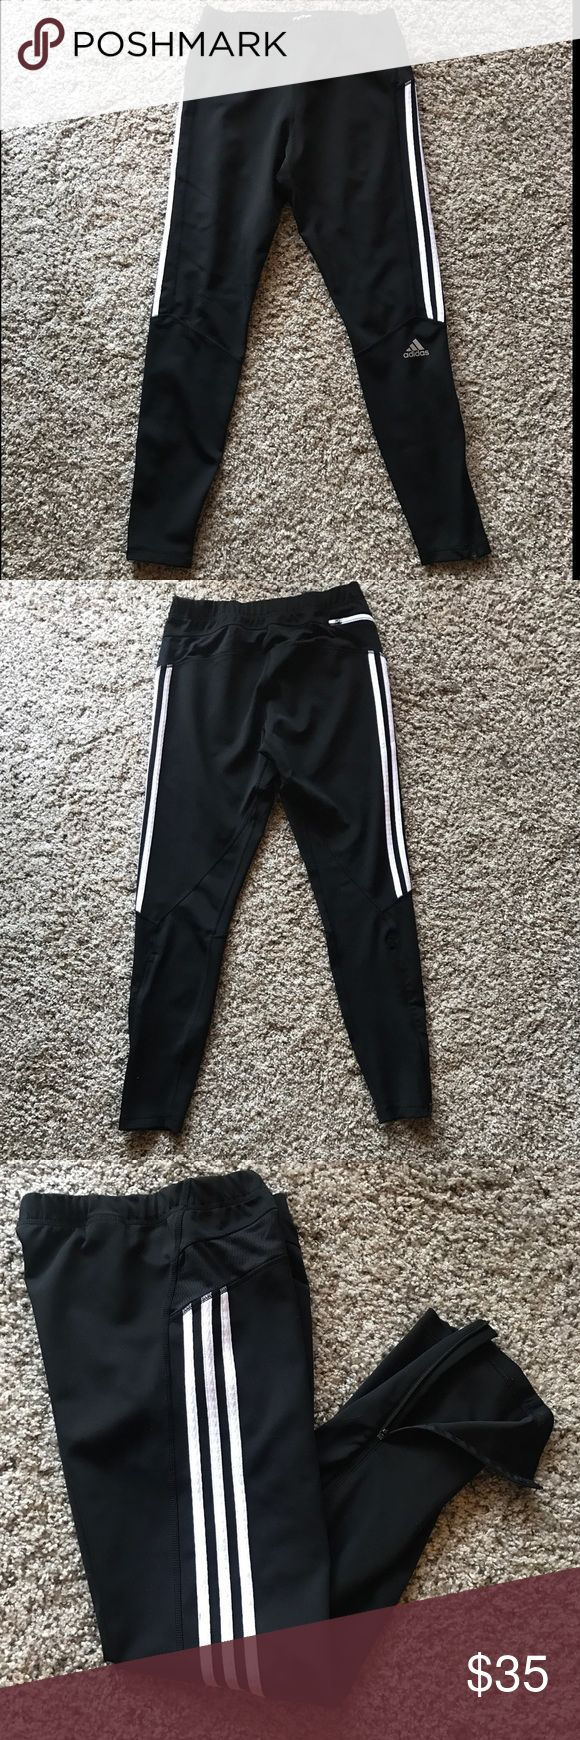 Women's Adidas Response ClimaLite leggings Worn no more than 5 times, they're super comfy and have zippers on the sides of the legs. Adidas Pants Leggings